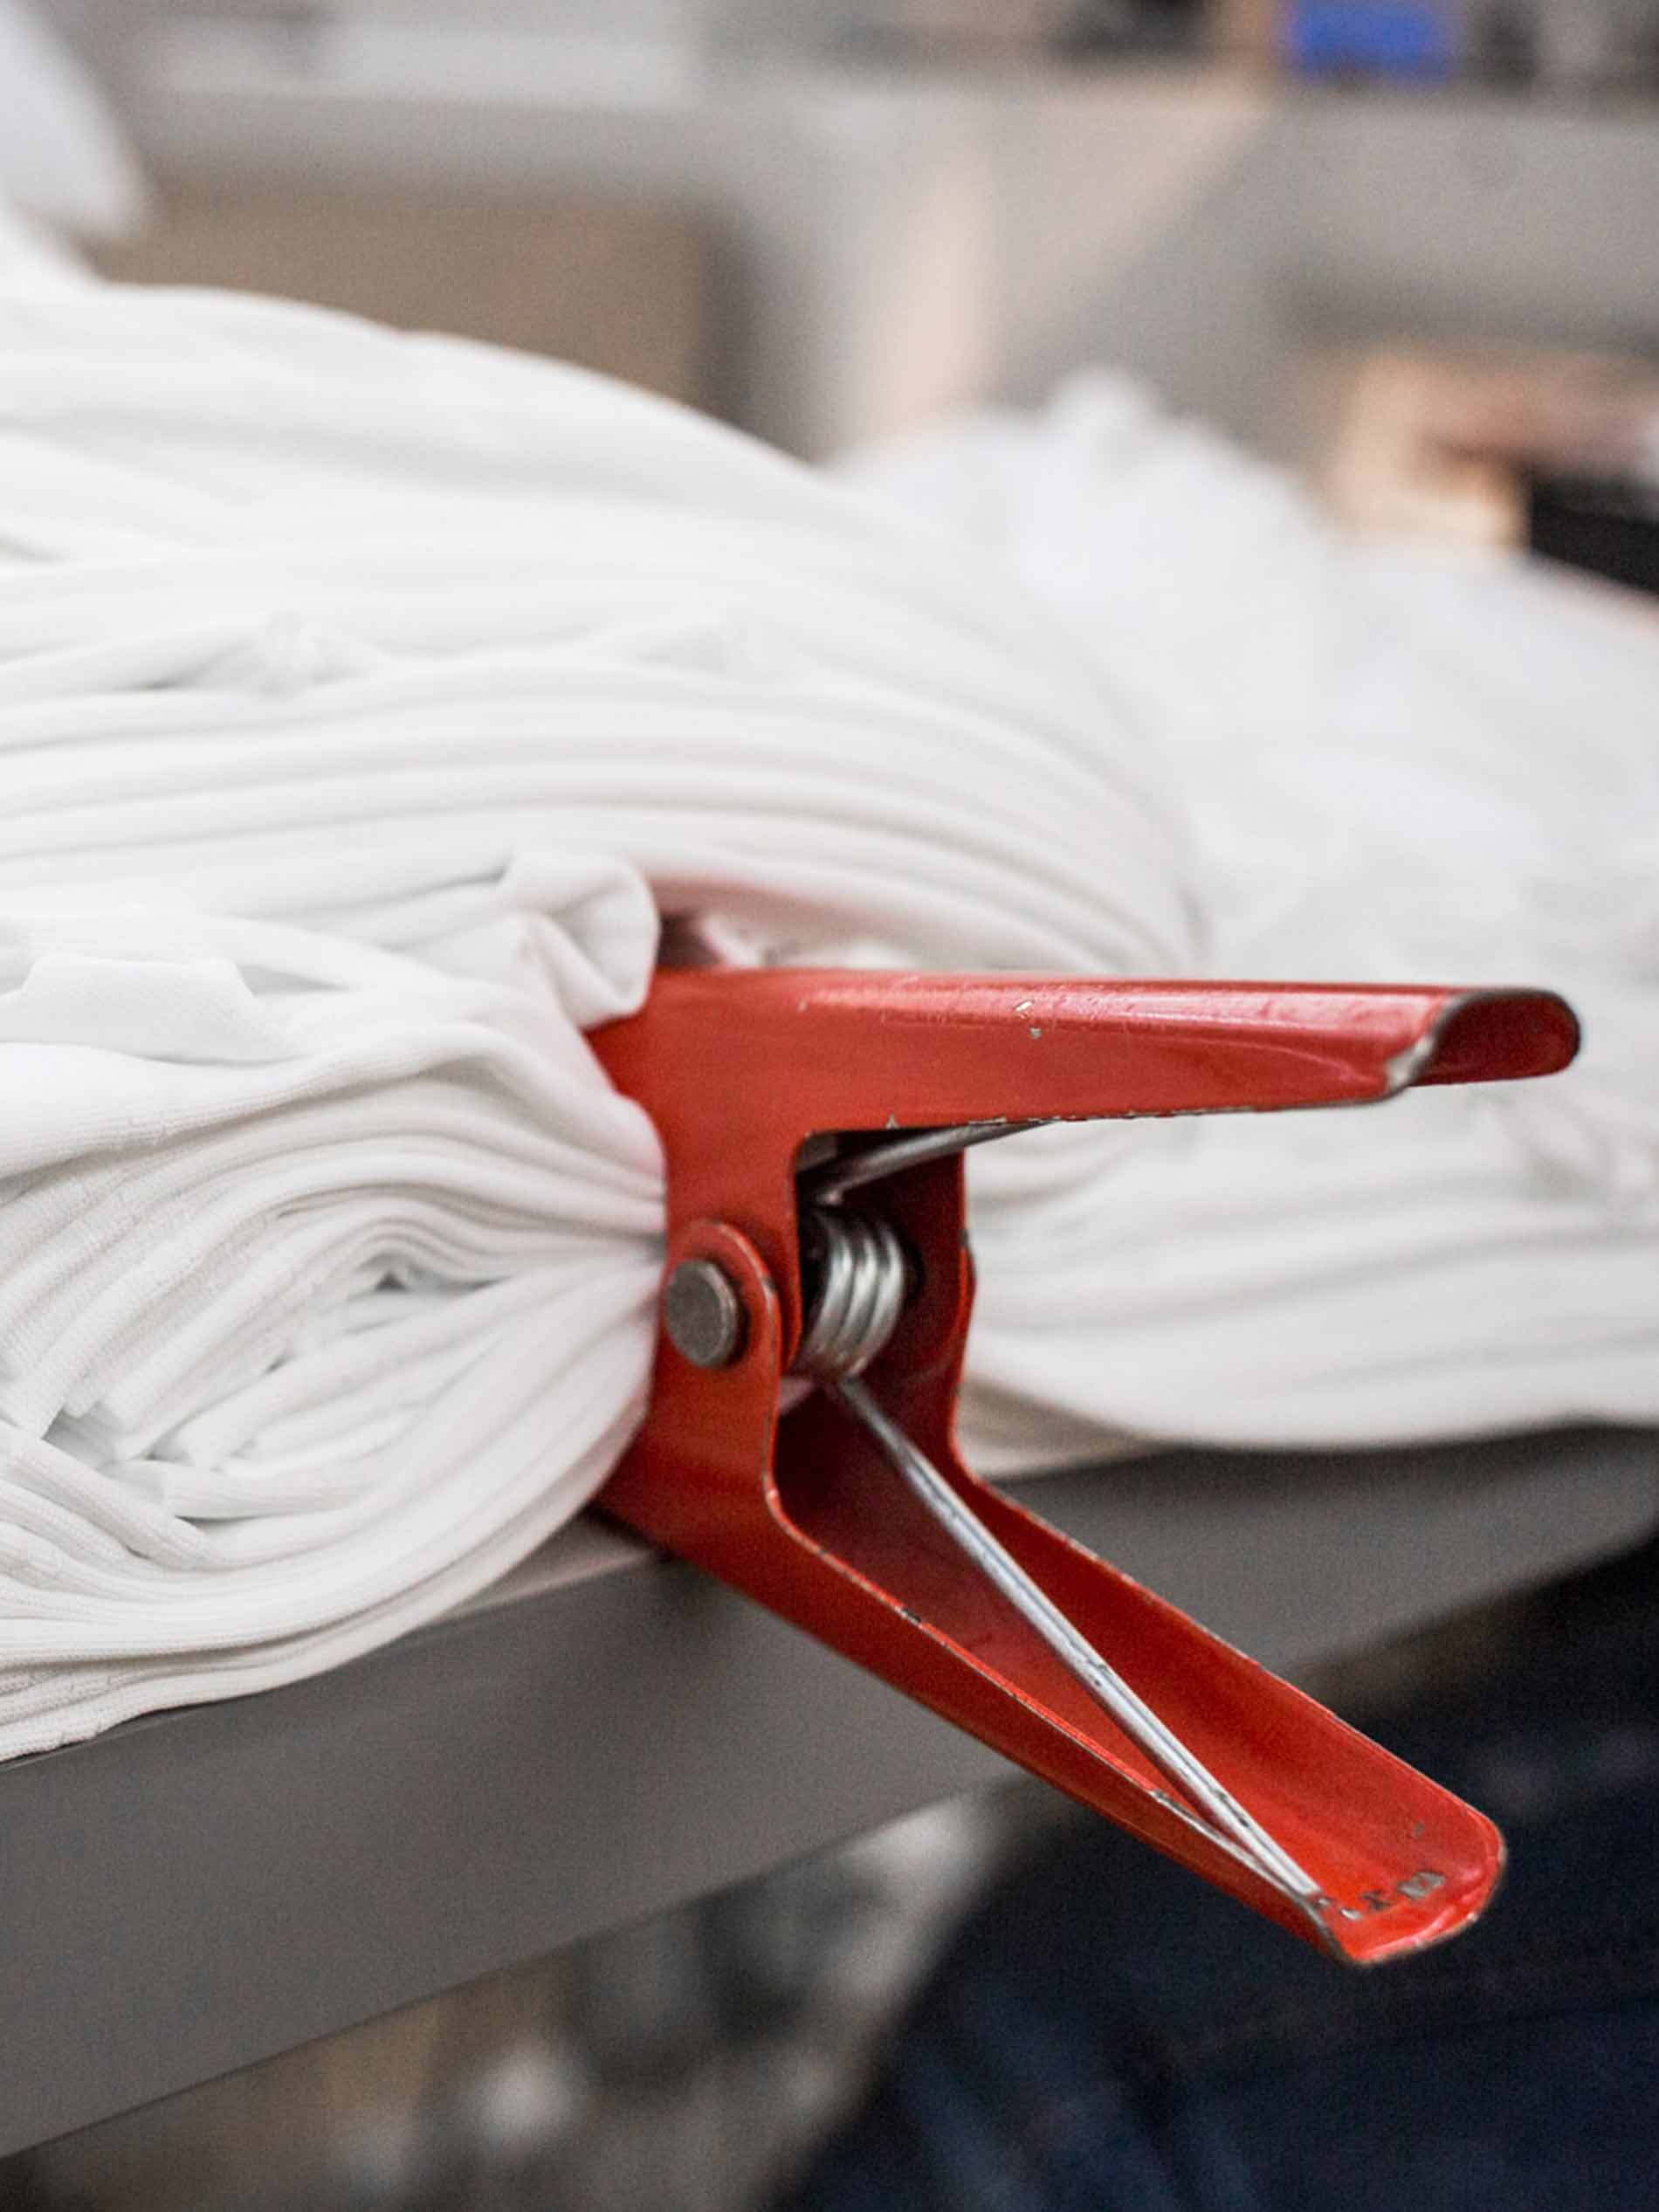 White fabric, folded into multiple layers and fixed in place with a red clip, preparation for the calendering process | mey®